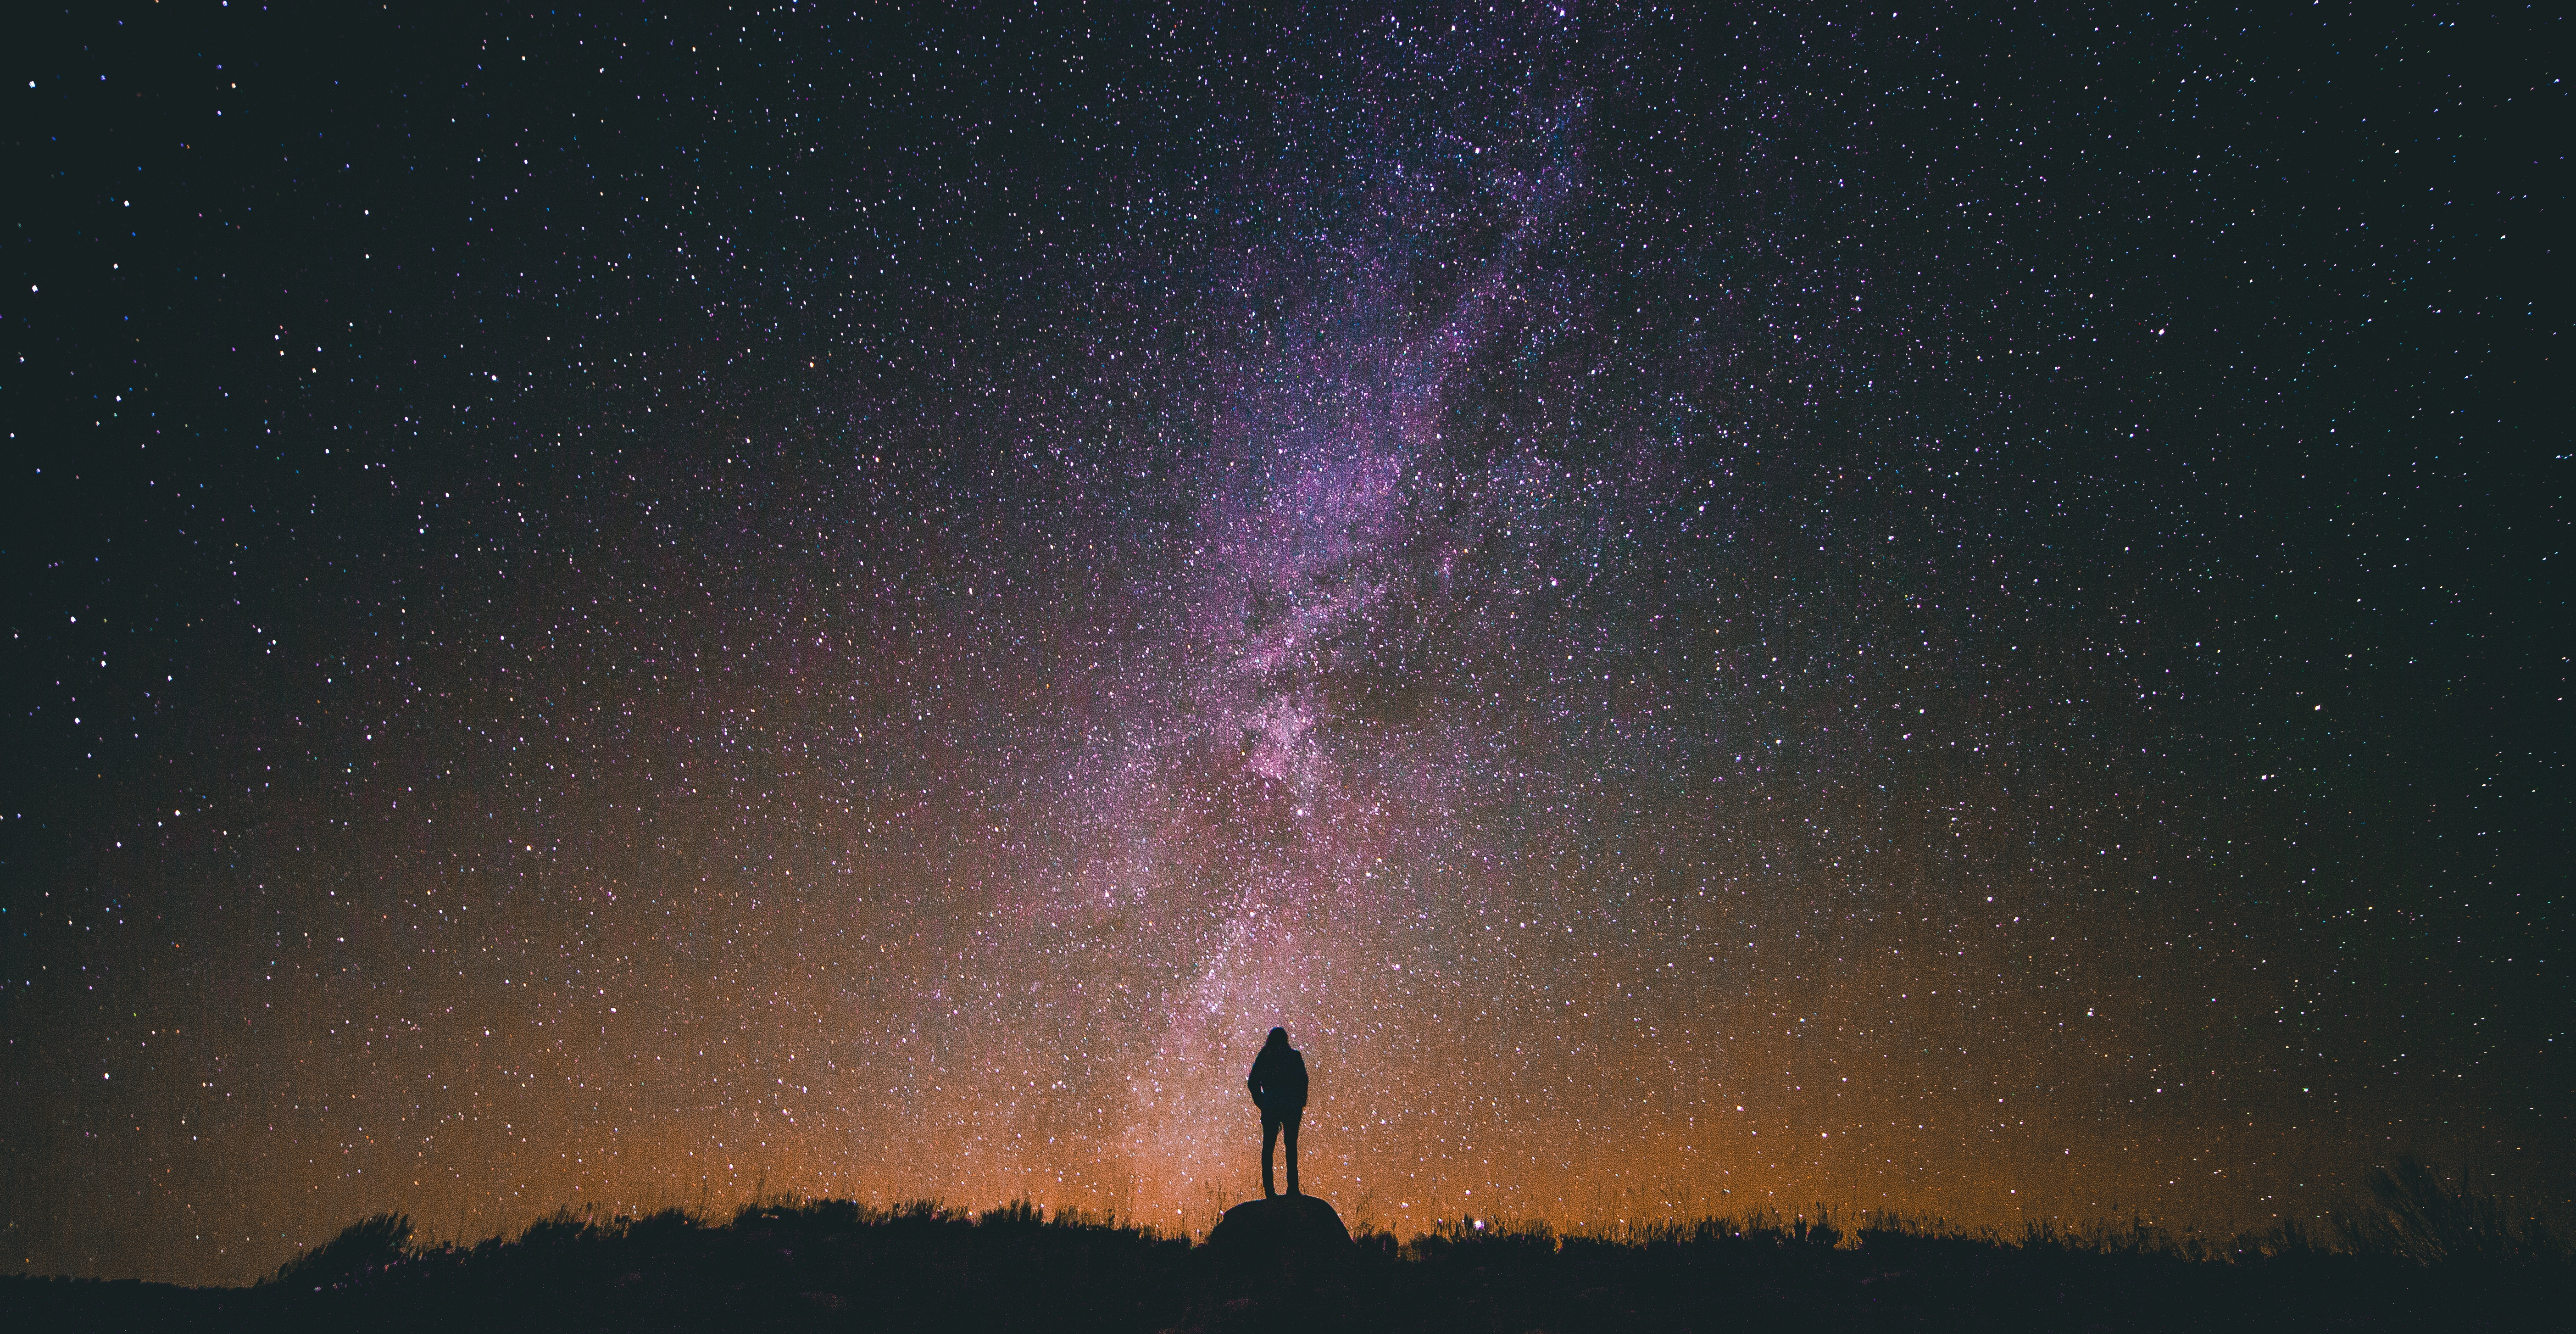 starry night - unsplash -1450849608880-6f787542c88a copy